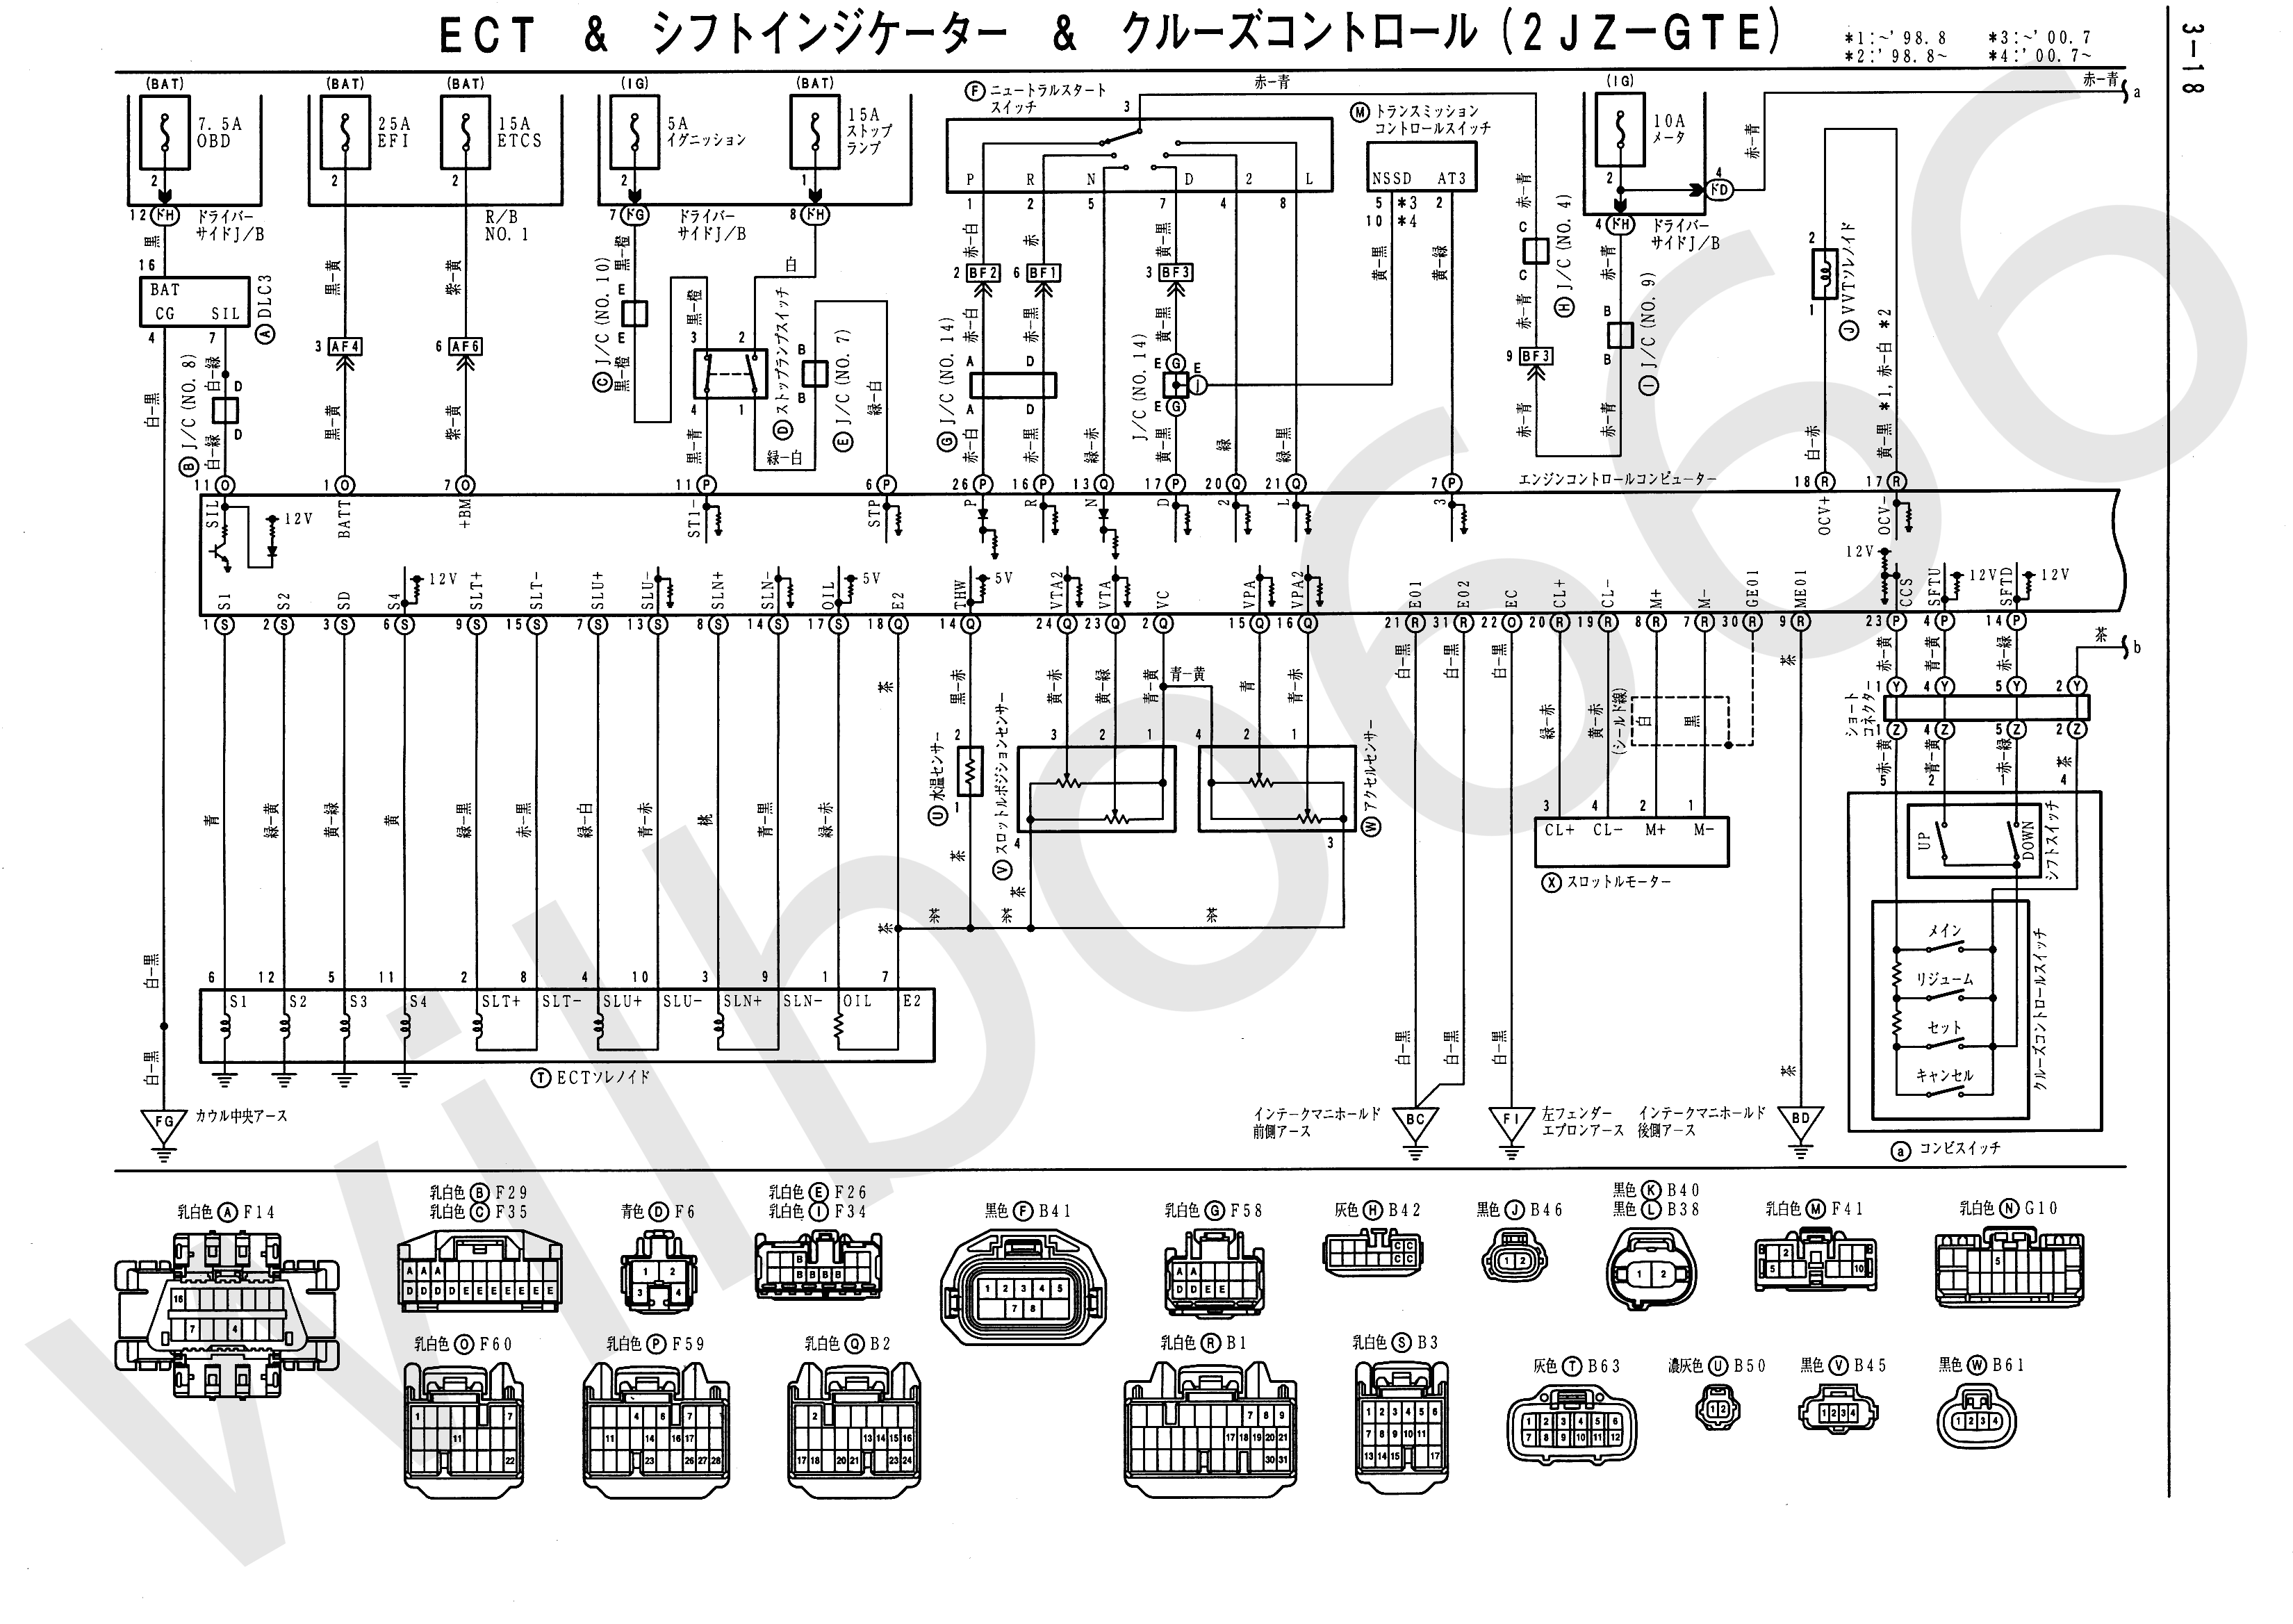 JZS161 Electrical Wiring Diagram 6748505 3 18 1jz engine sensor diagram 1jz wiring diagrams instruction 1jz wiring diagram at soozxer.org